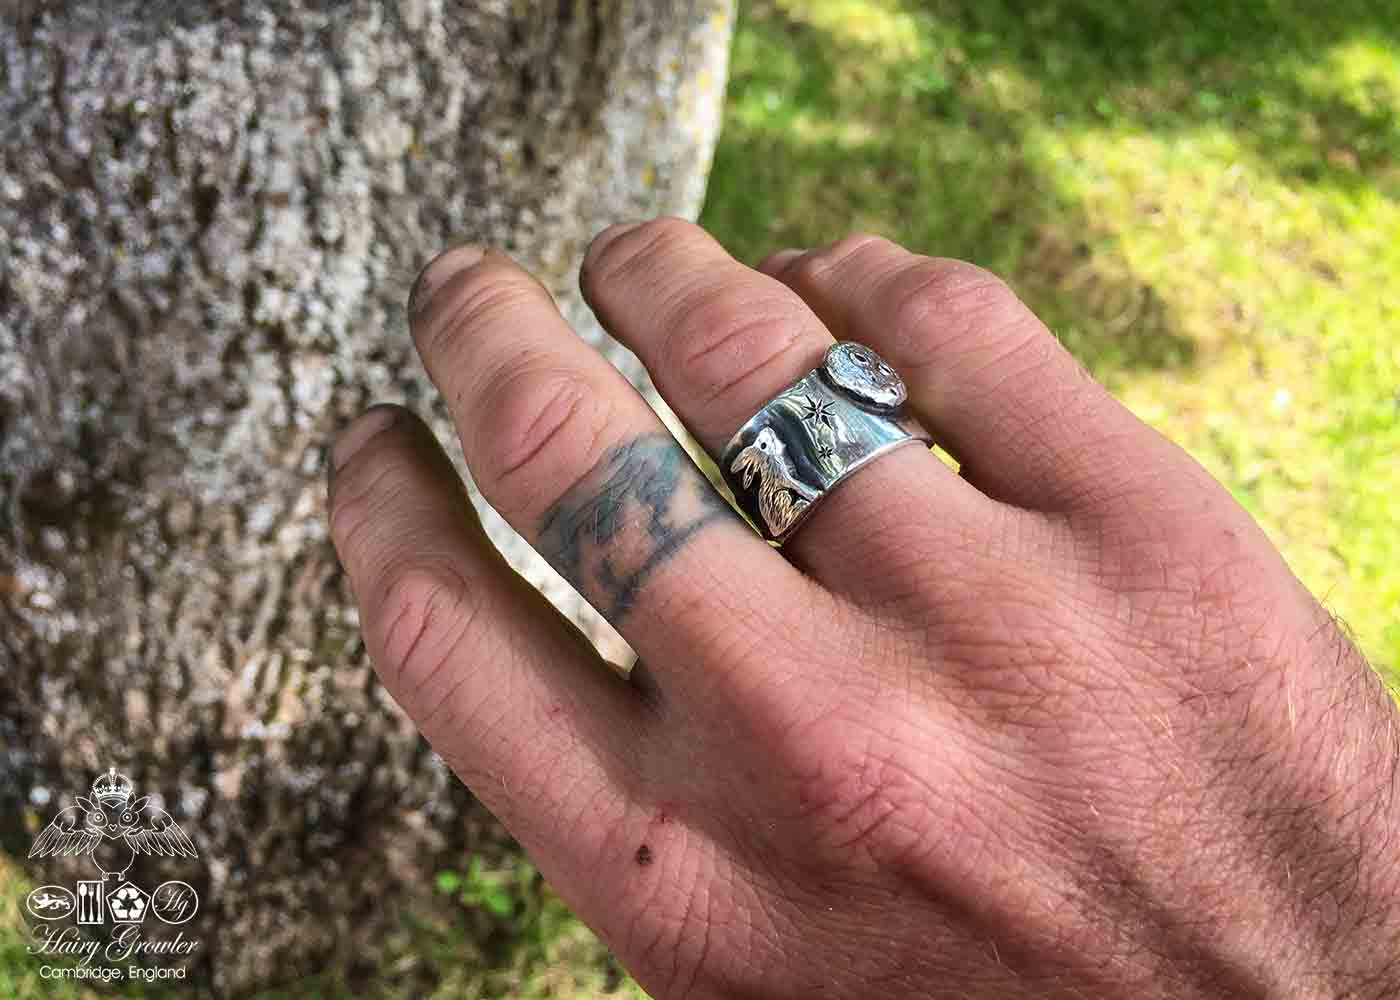 Beautiful nature inspired silver recycled jewellery moon gazing hare ring made from silver coins